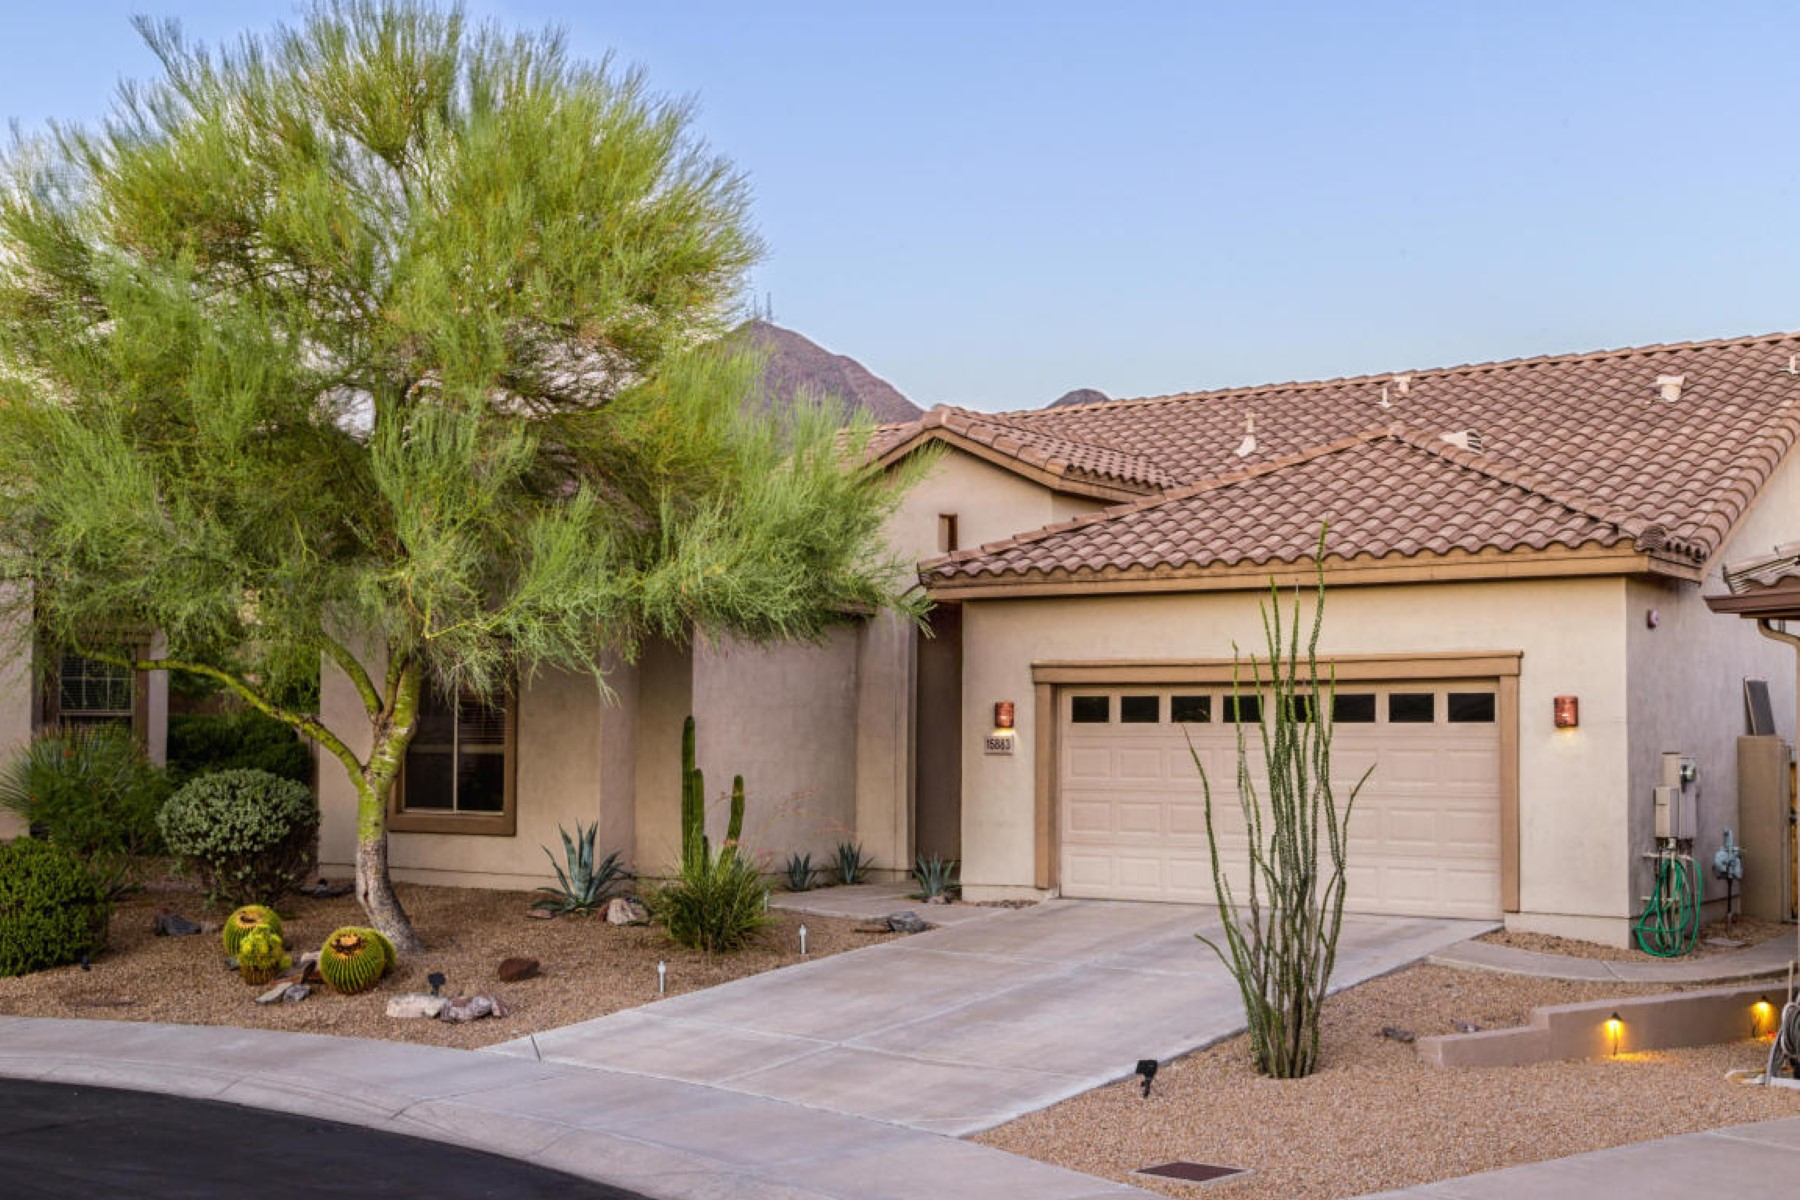 Single Family Home for Sale at Charming home in McDowell Mountain Ranch 15883 N 107th Pl Scottsdale, Arizona, 85255 United States